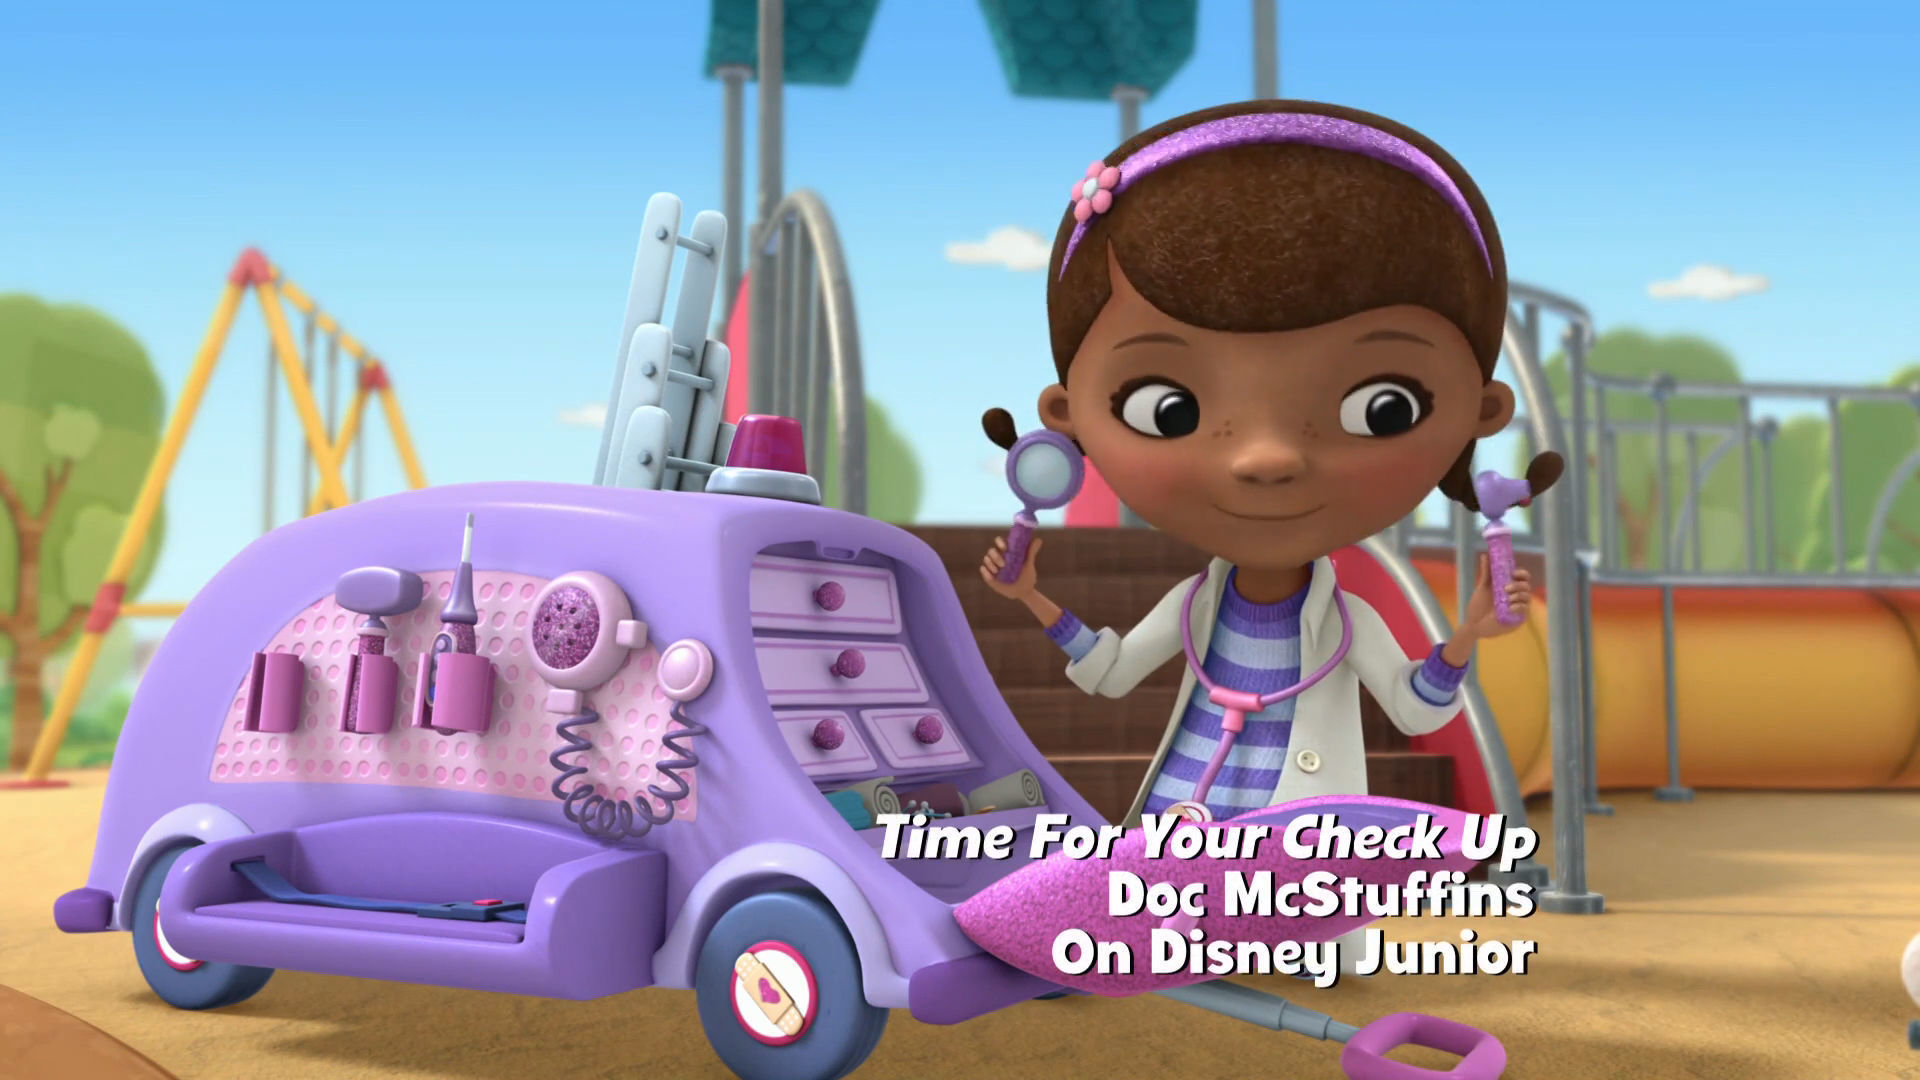 DJ Shuffle - Doc McStuffins: Time For Your Check Up